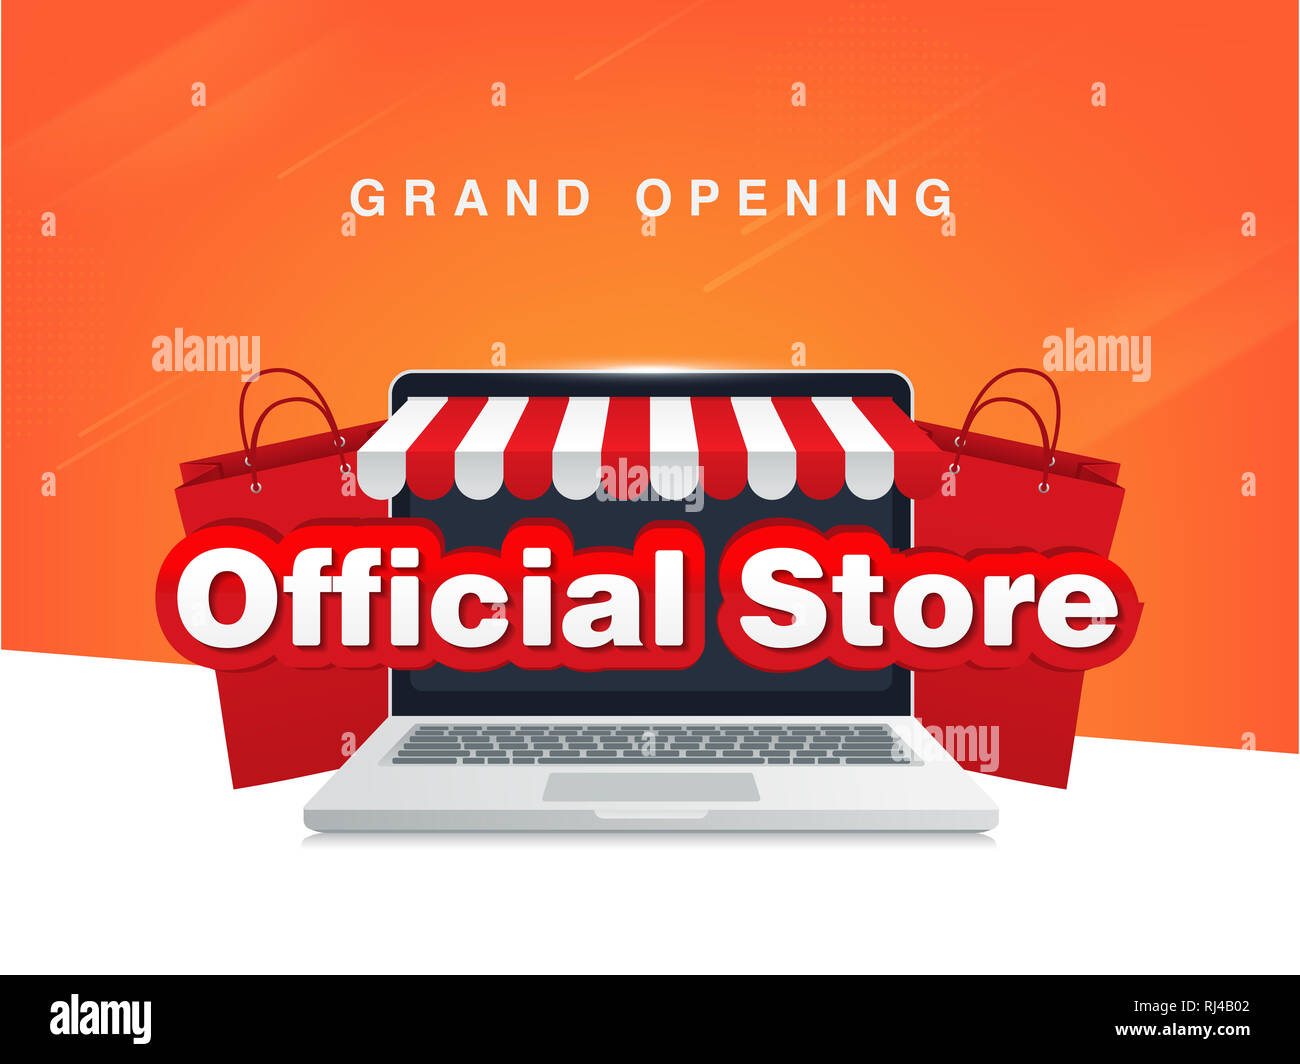 info for 67b72 c4358 grand opening official store, sale bag, online shop ...